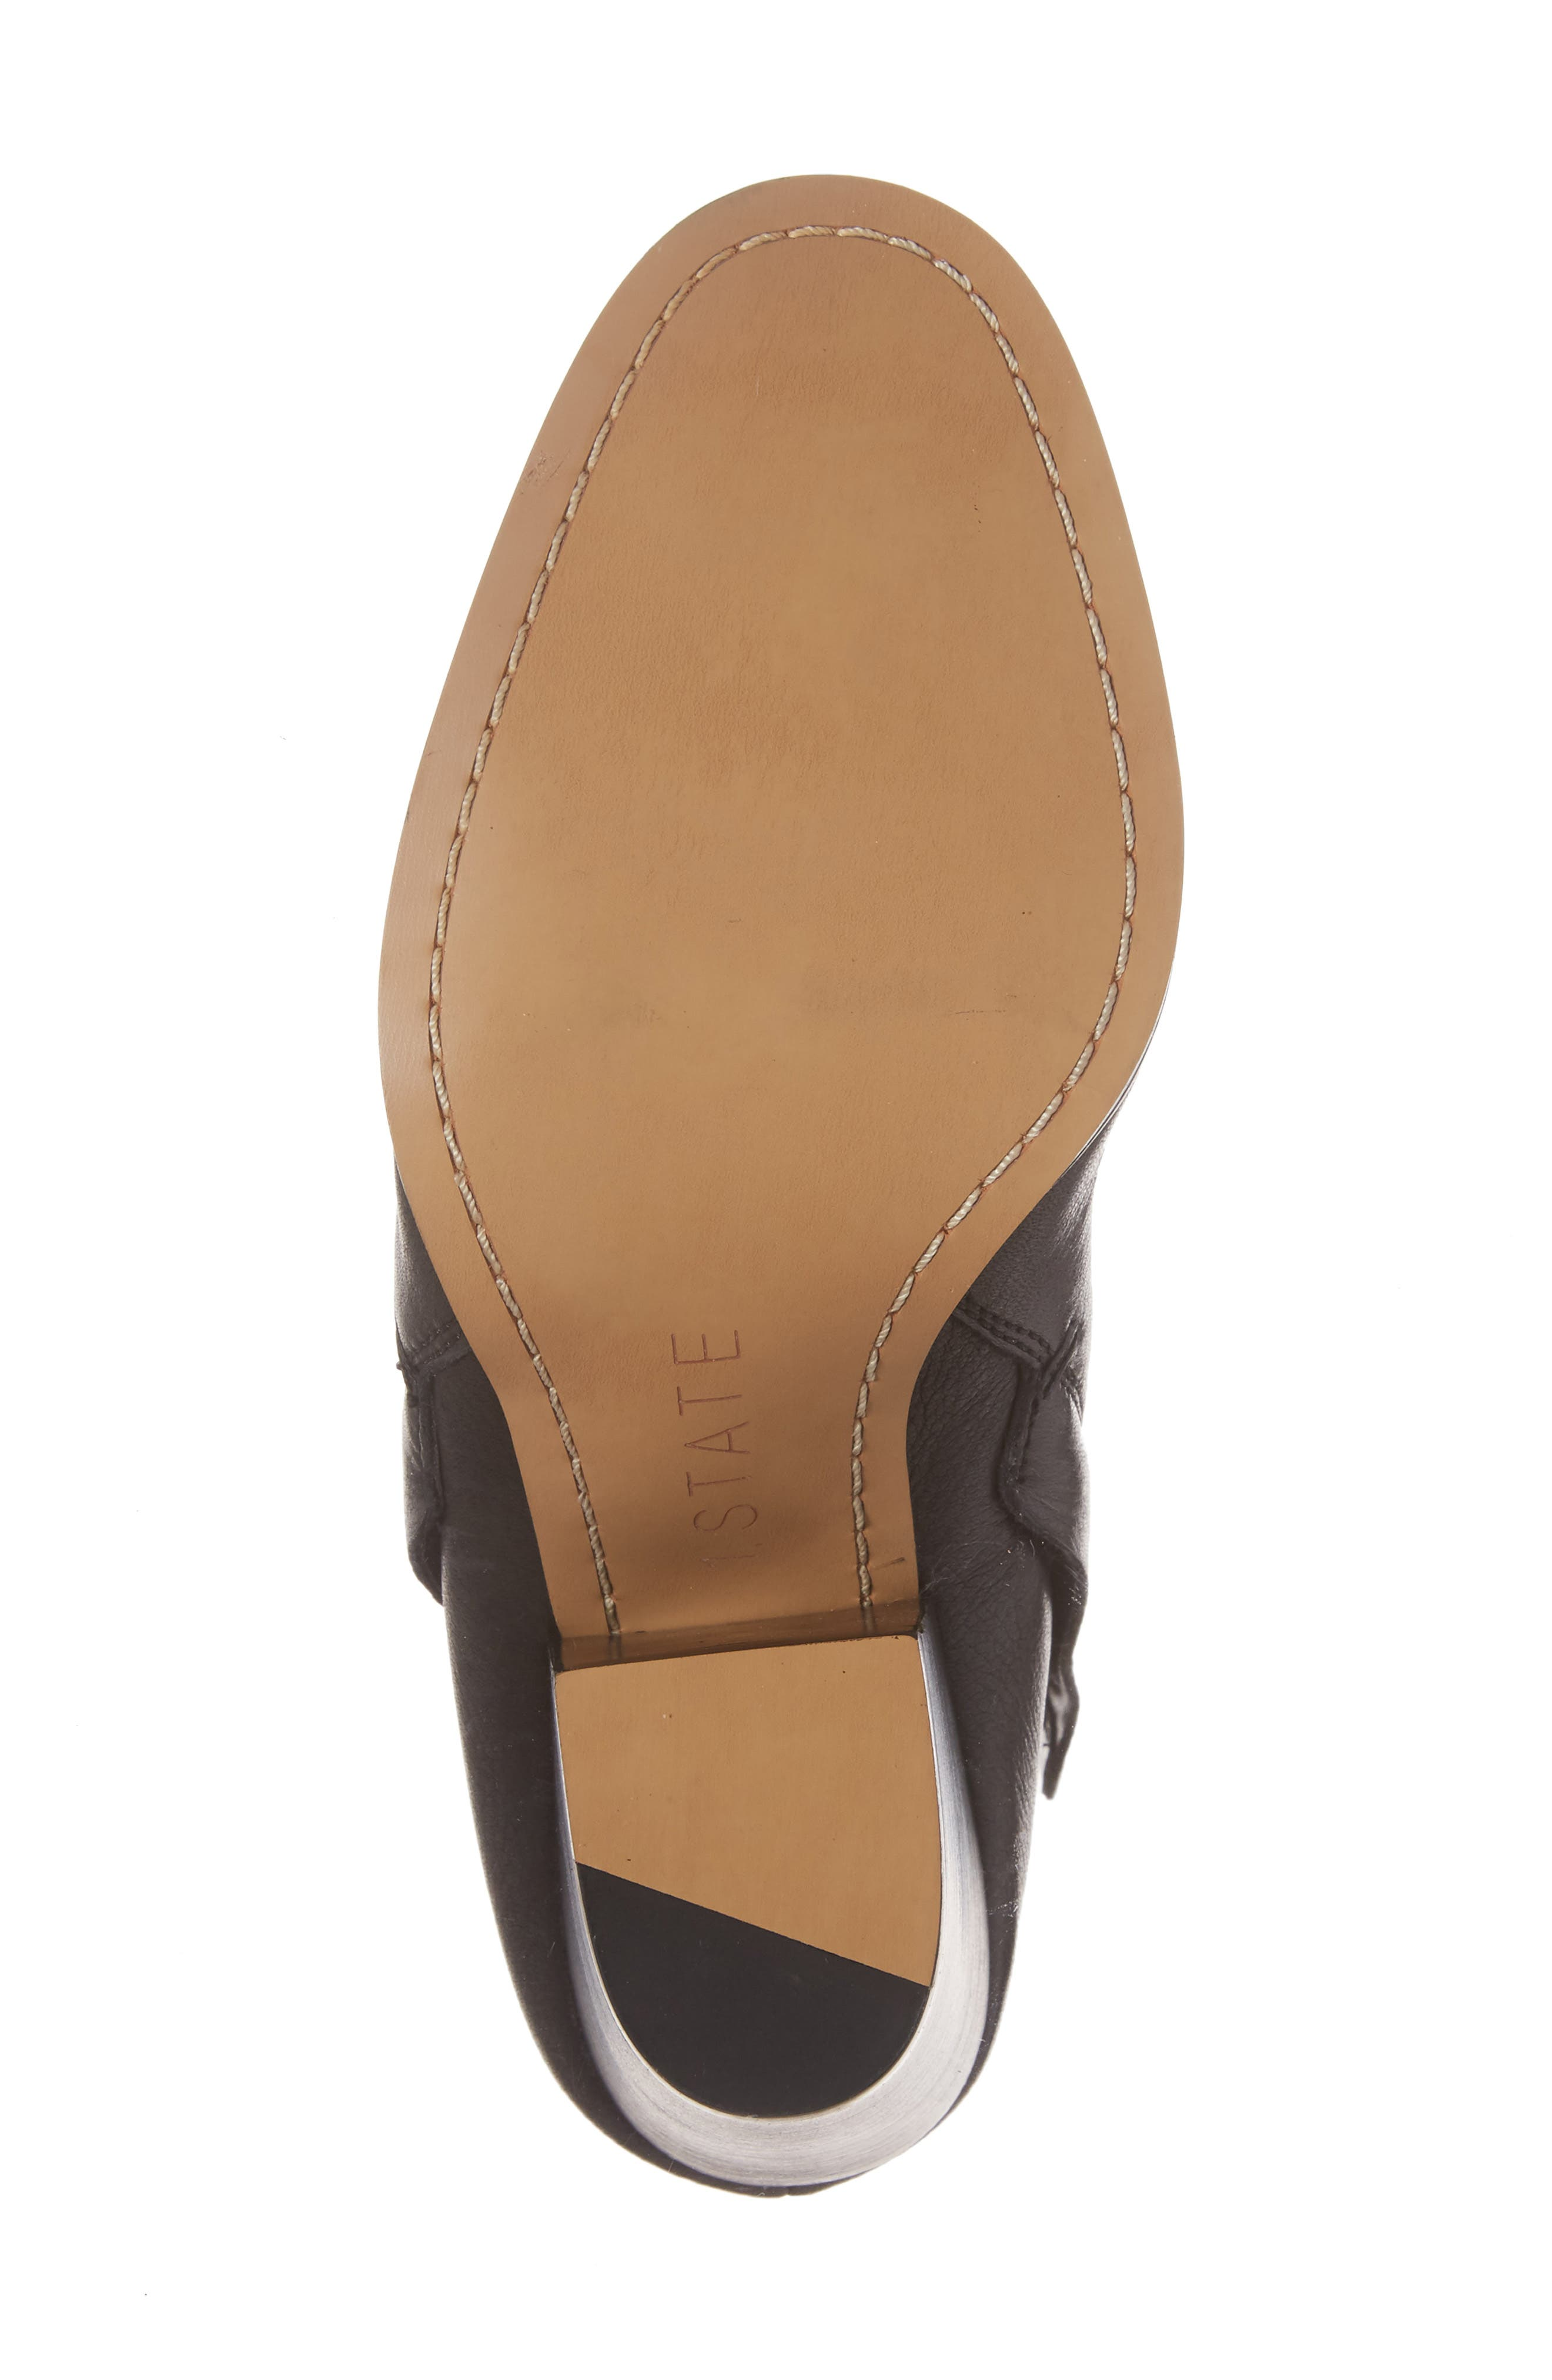 Taila Angle Zip Bootie,                             Alternate thumbnail 11, color,